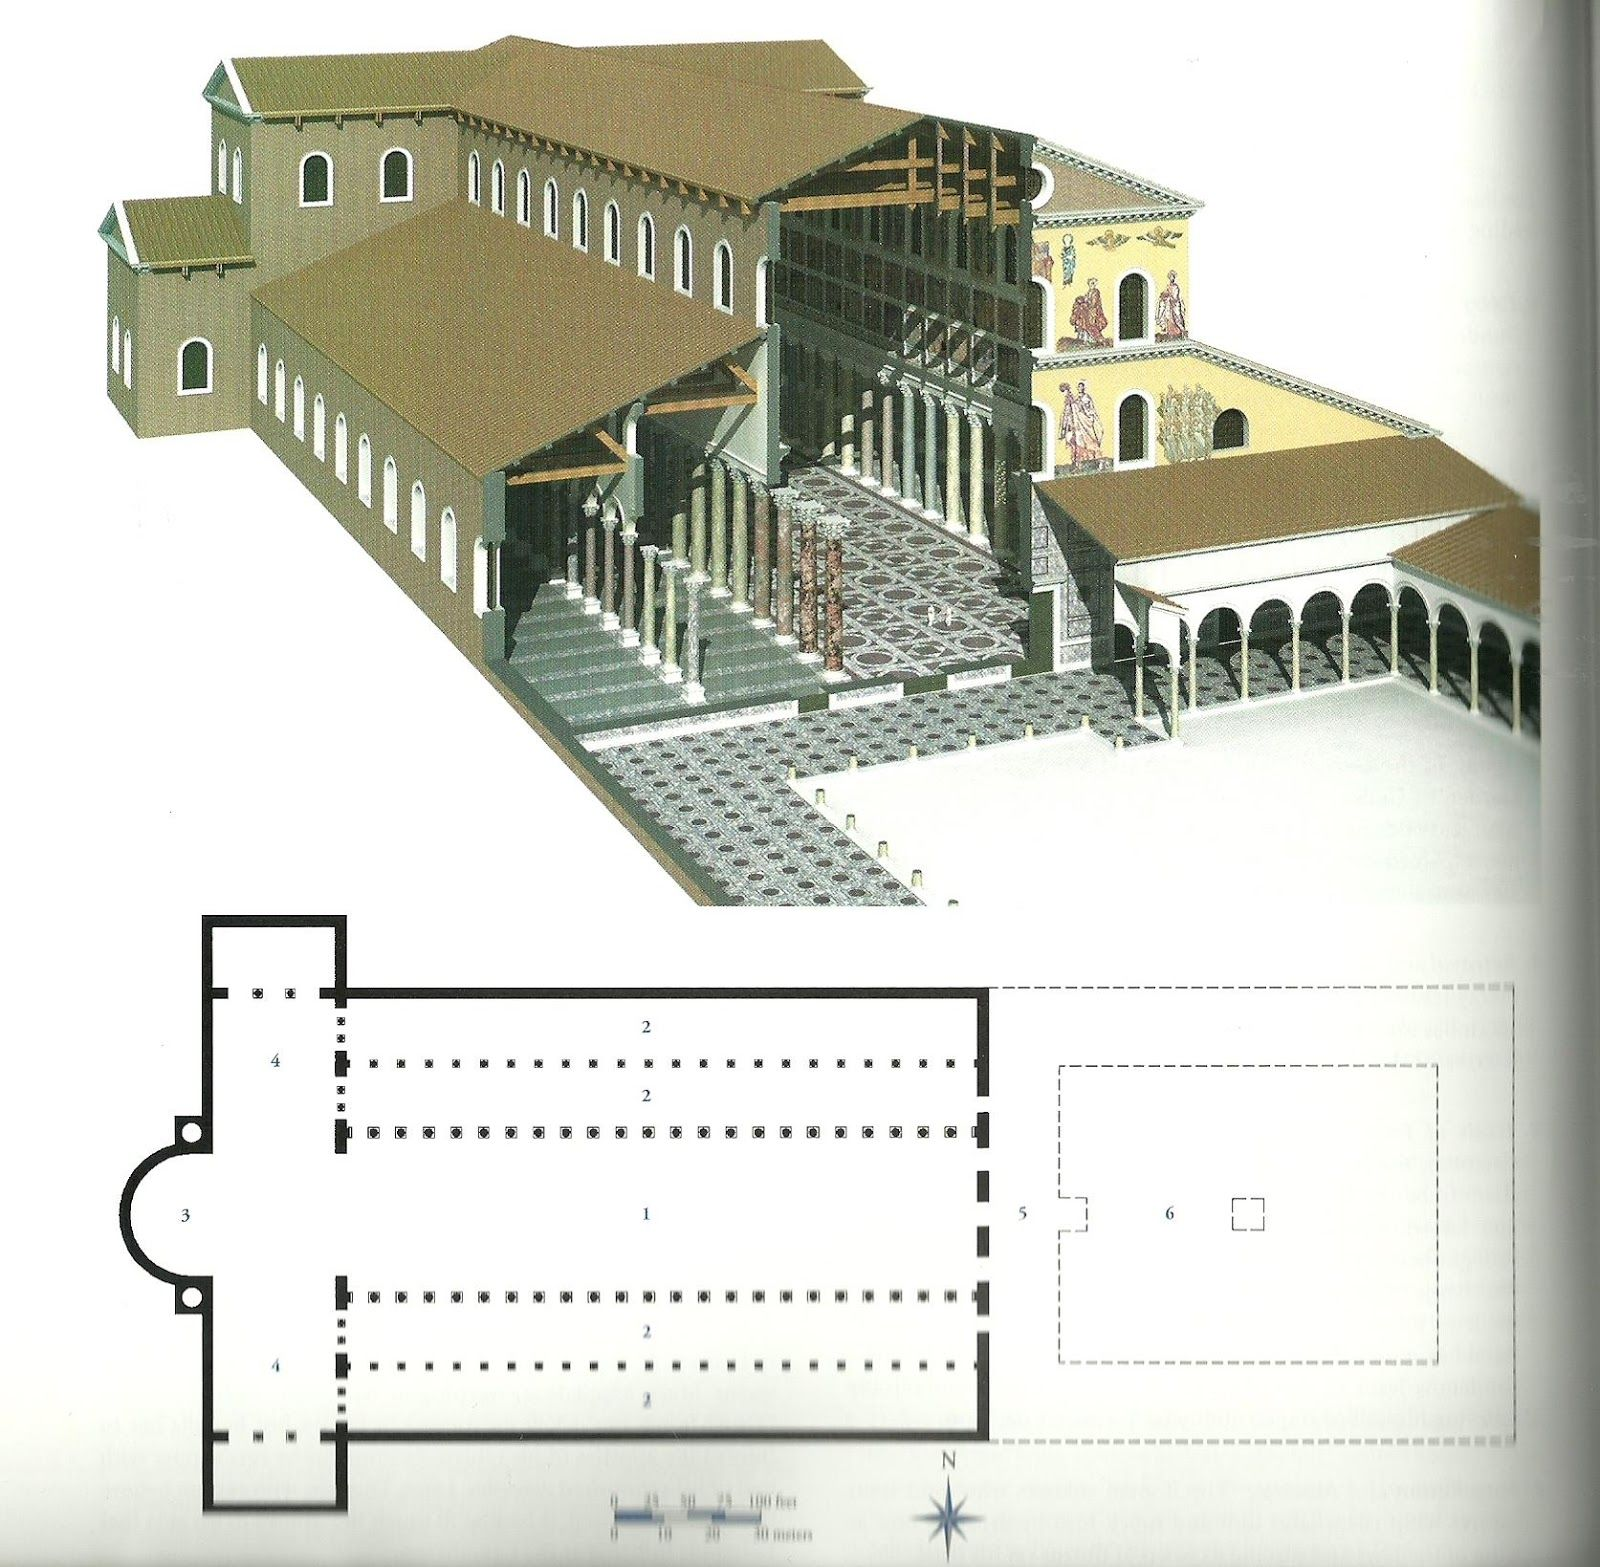 plan and reconstruction drawing old st peter s basilica begun by emperor constantine i 4th century ad [ 1600 x 1567 Pixel ]